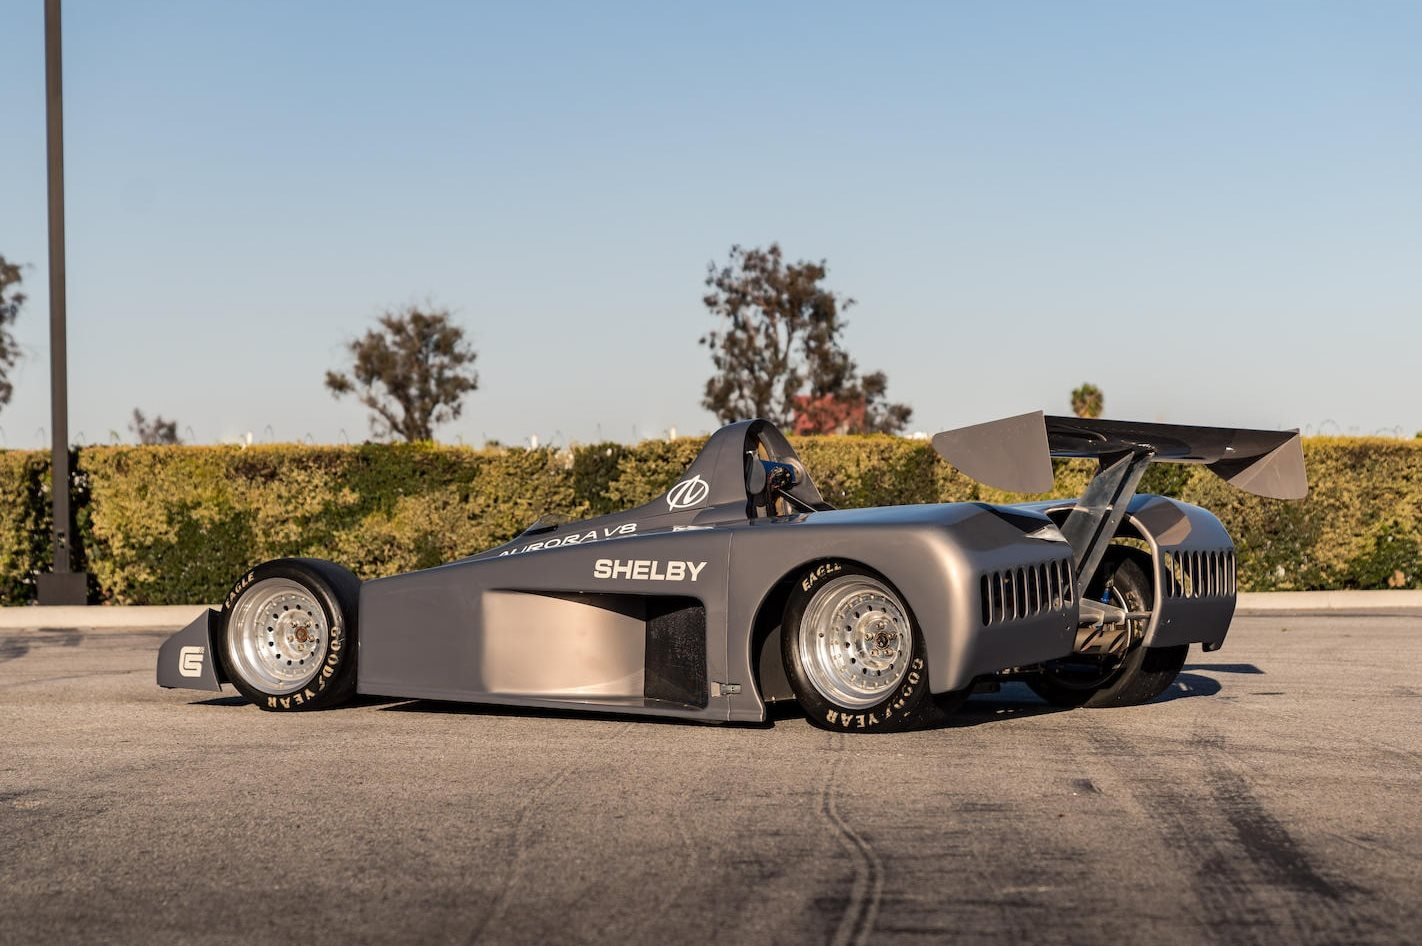 1997 Shelby Helby Aurora V8 Can-Am (7)